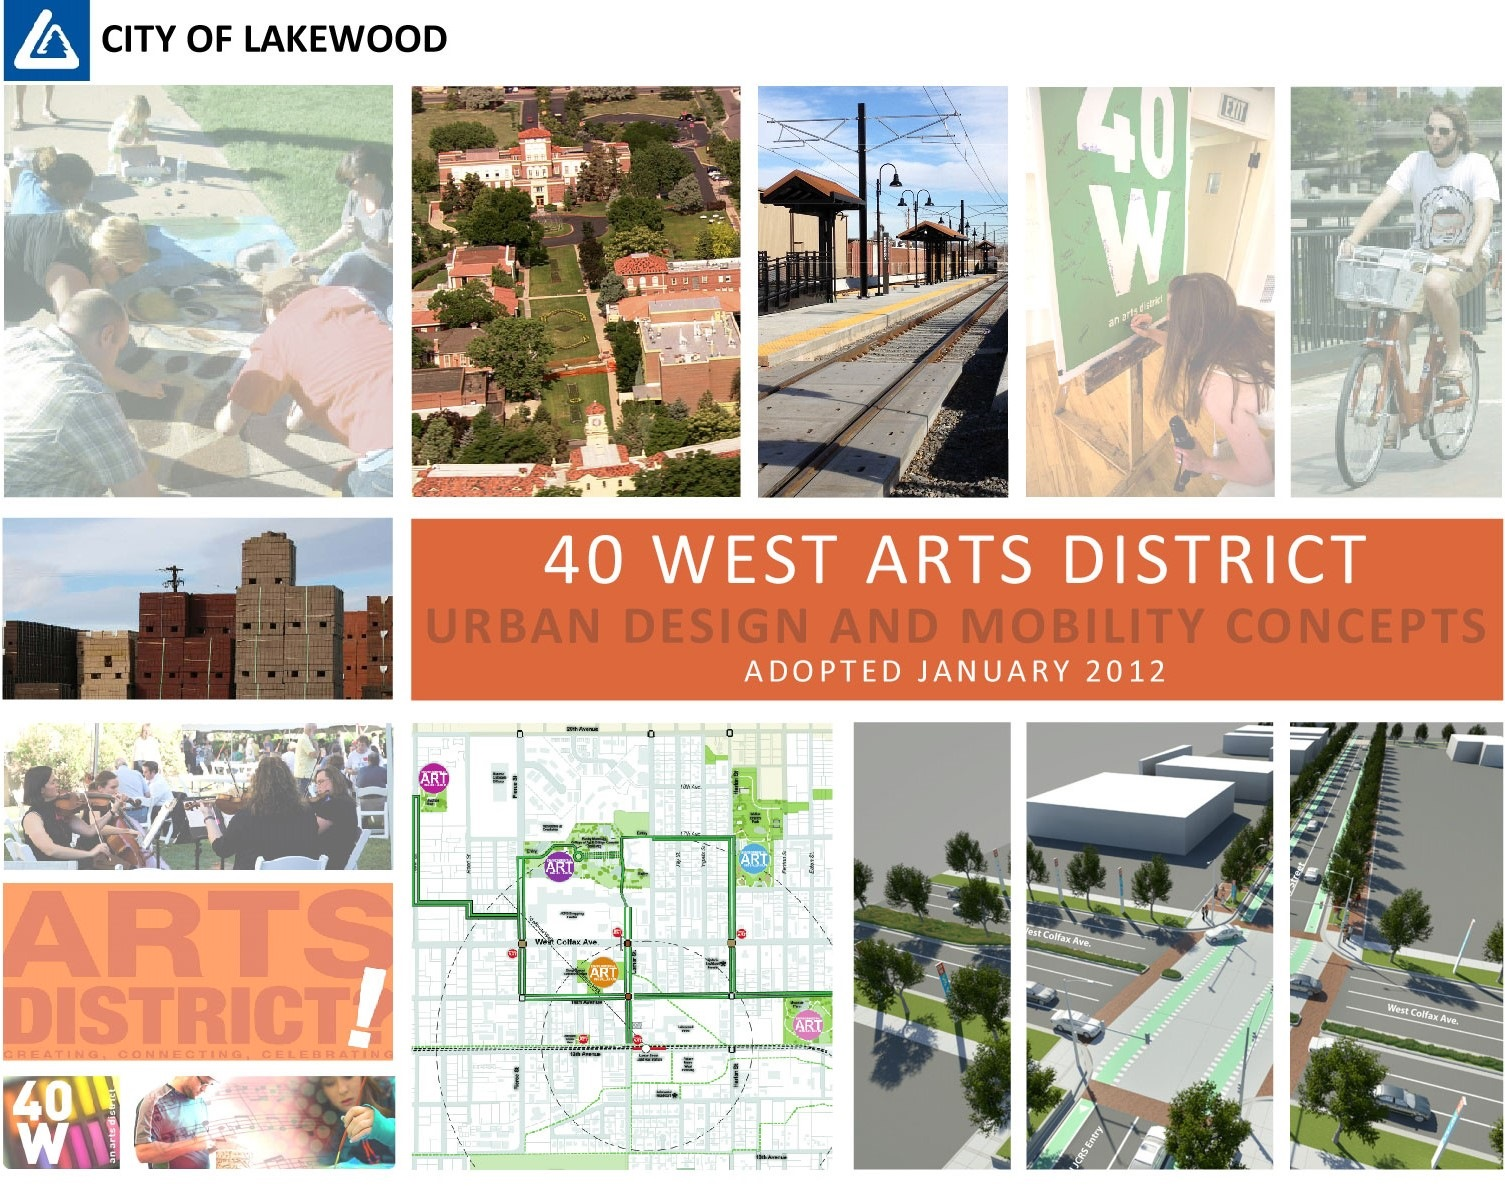 The cover for the 40 West Arts District: Urban Design and Mobility Concepts Plan.